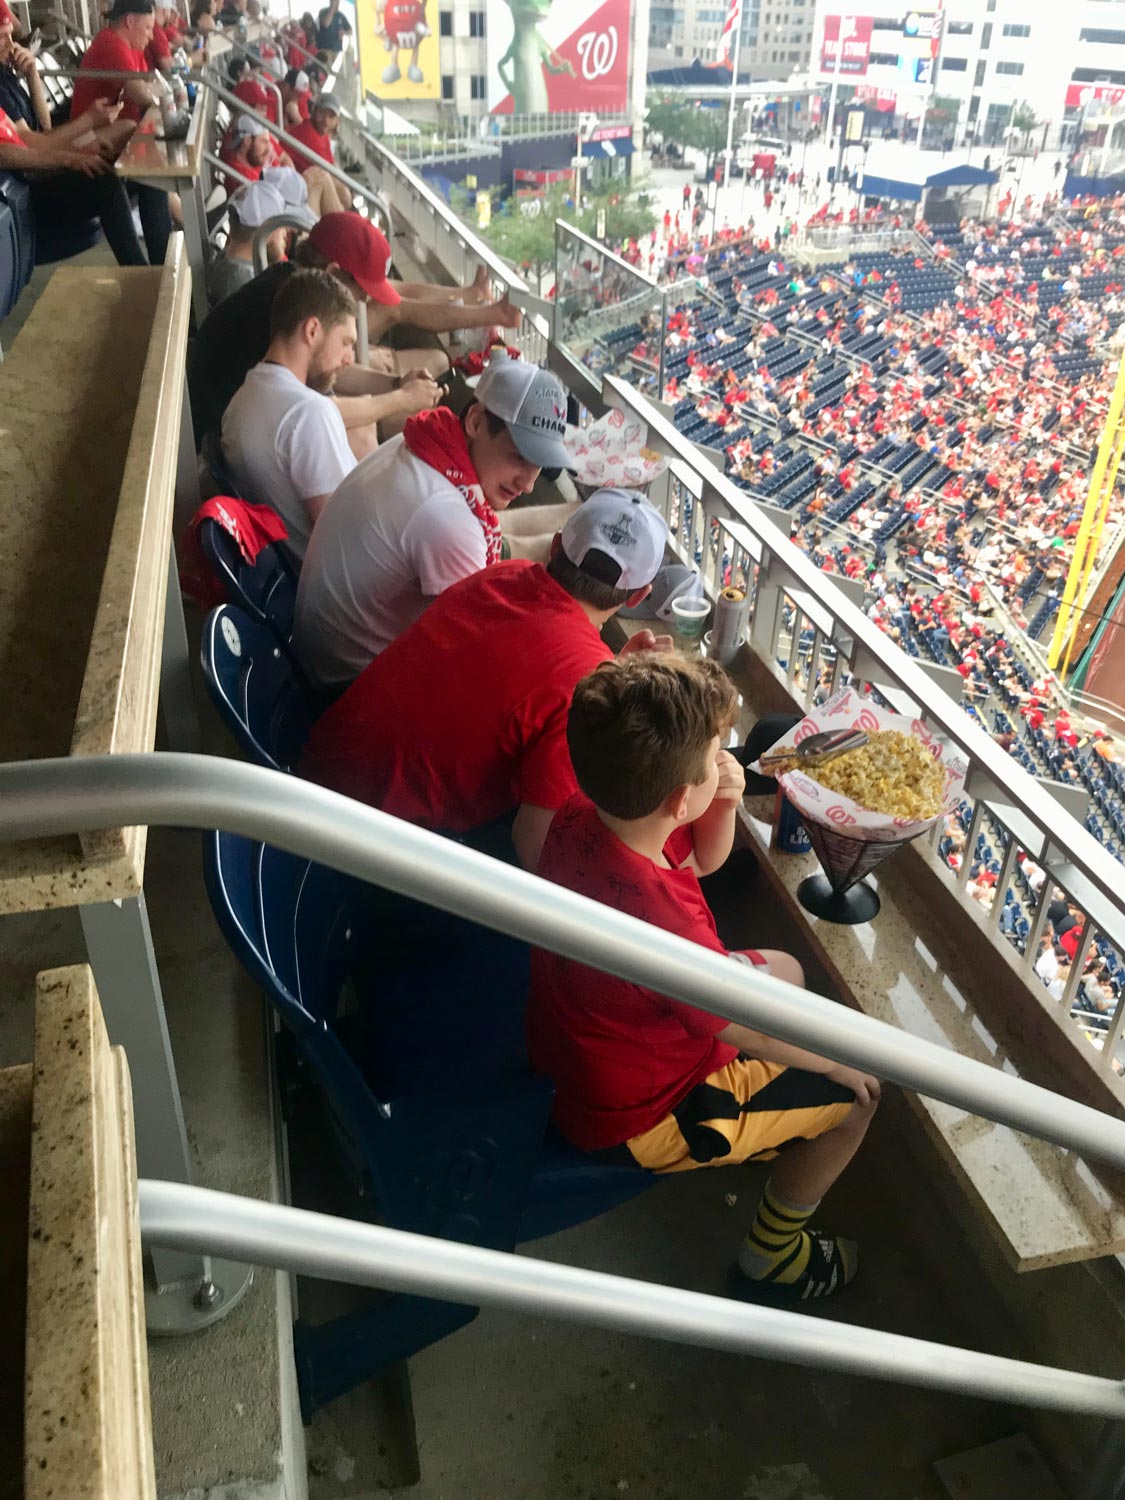 10-year-old sits with Jakub Vrana, Dmitry Orlov, and Evgeny Kuznetsov